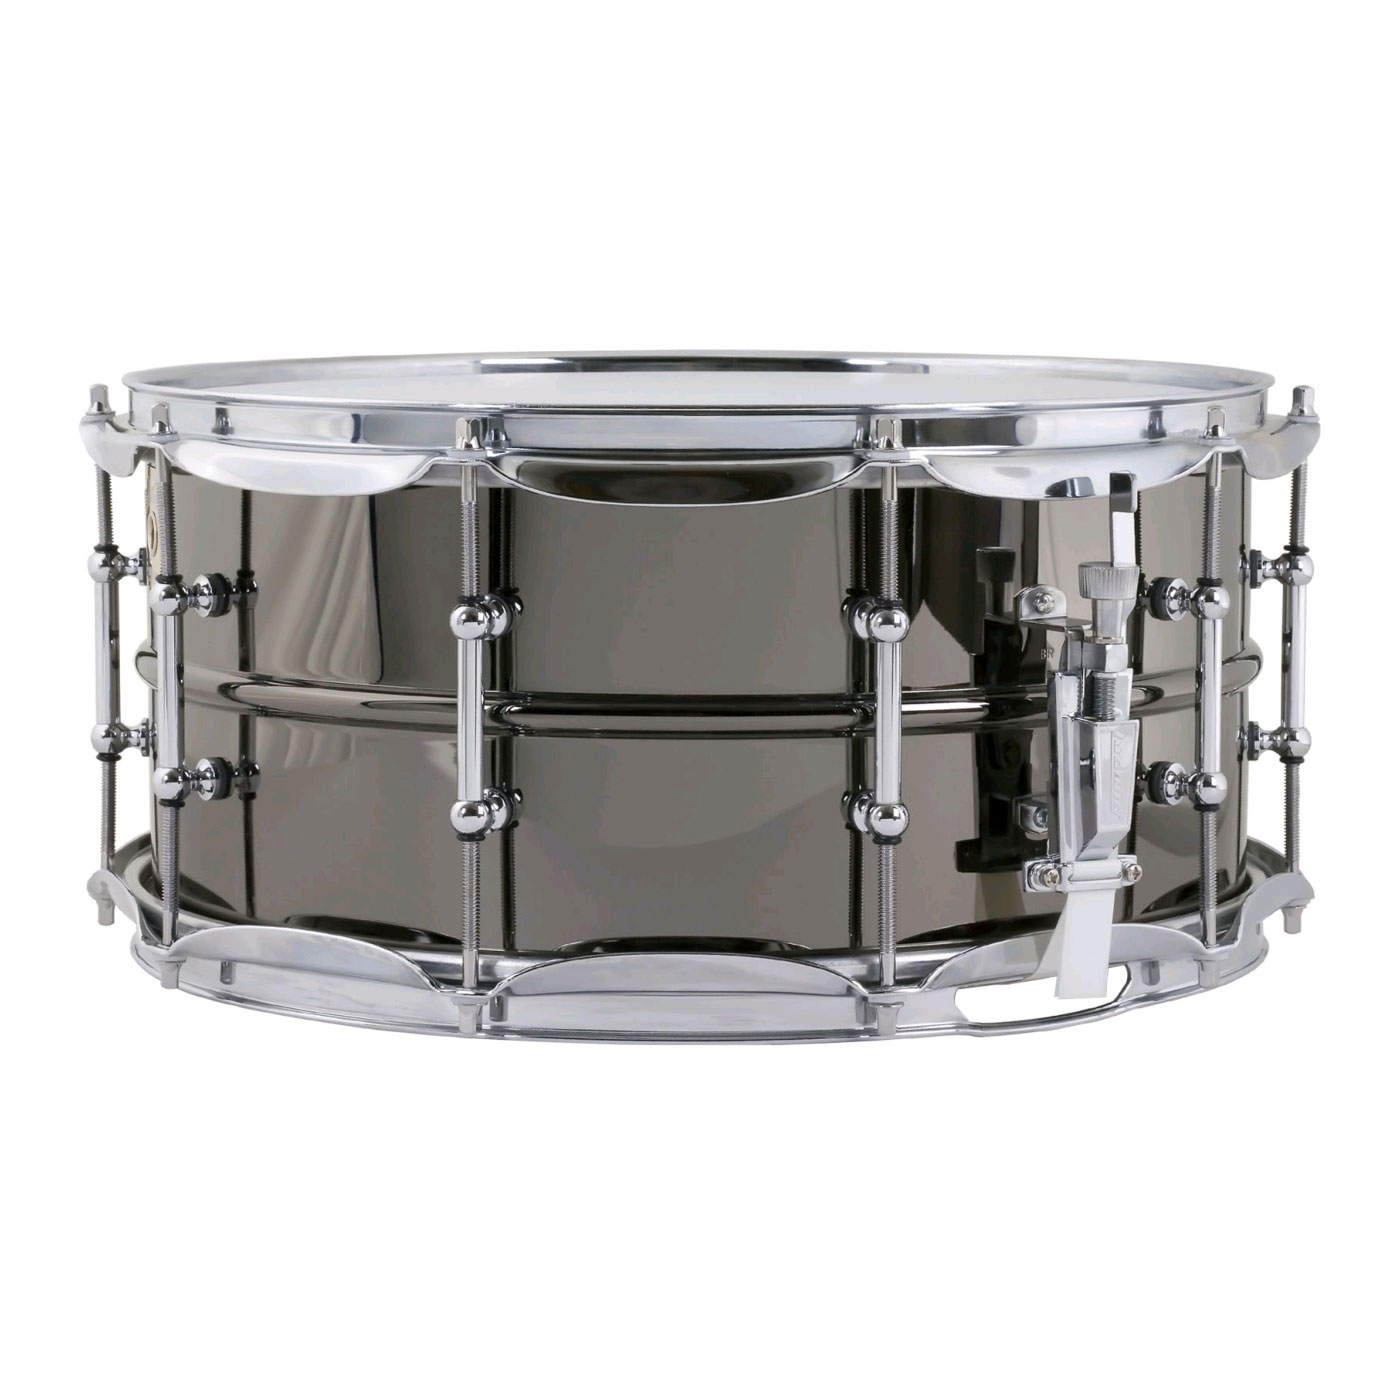 "Ludwig 6.5"" x 14"" Black Beauty Snare Drum with Tube Lugs"